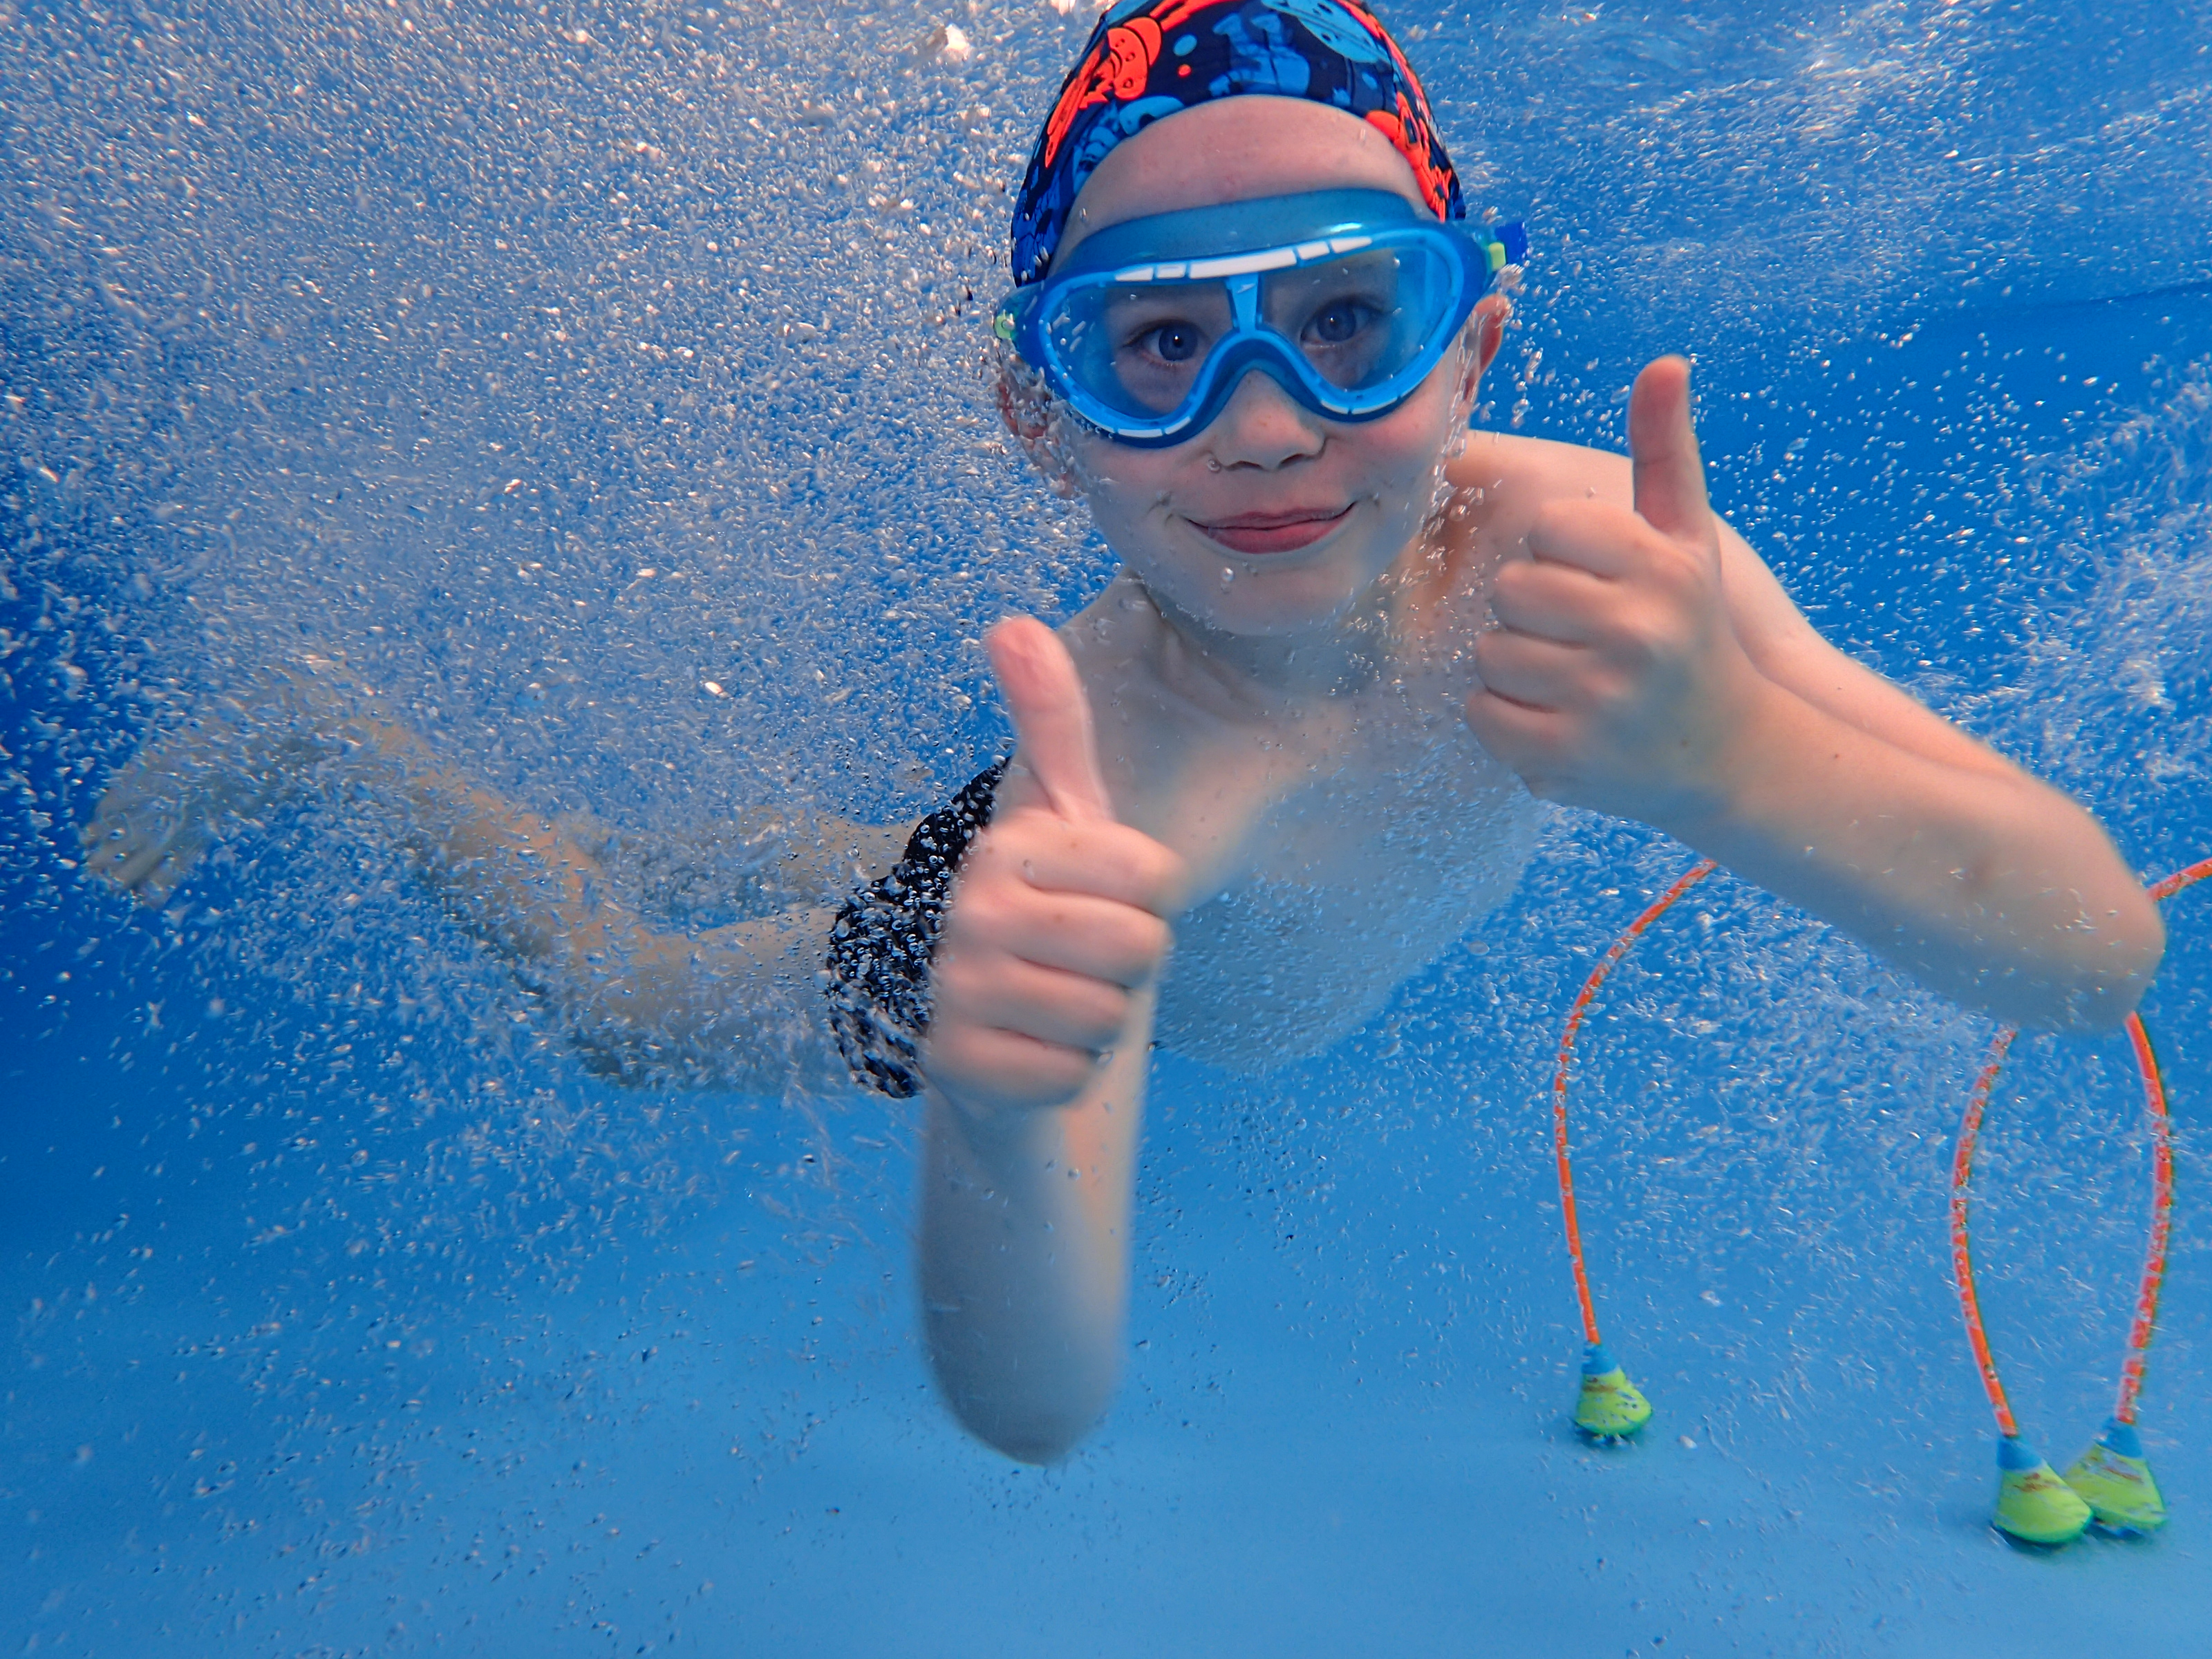 University's business support helps local swim school make a splash!